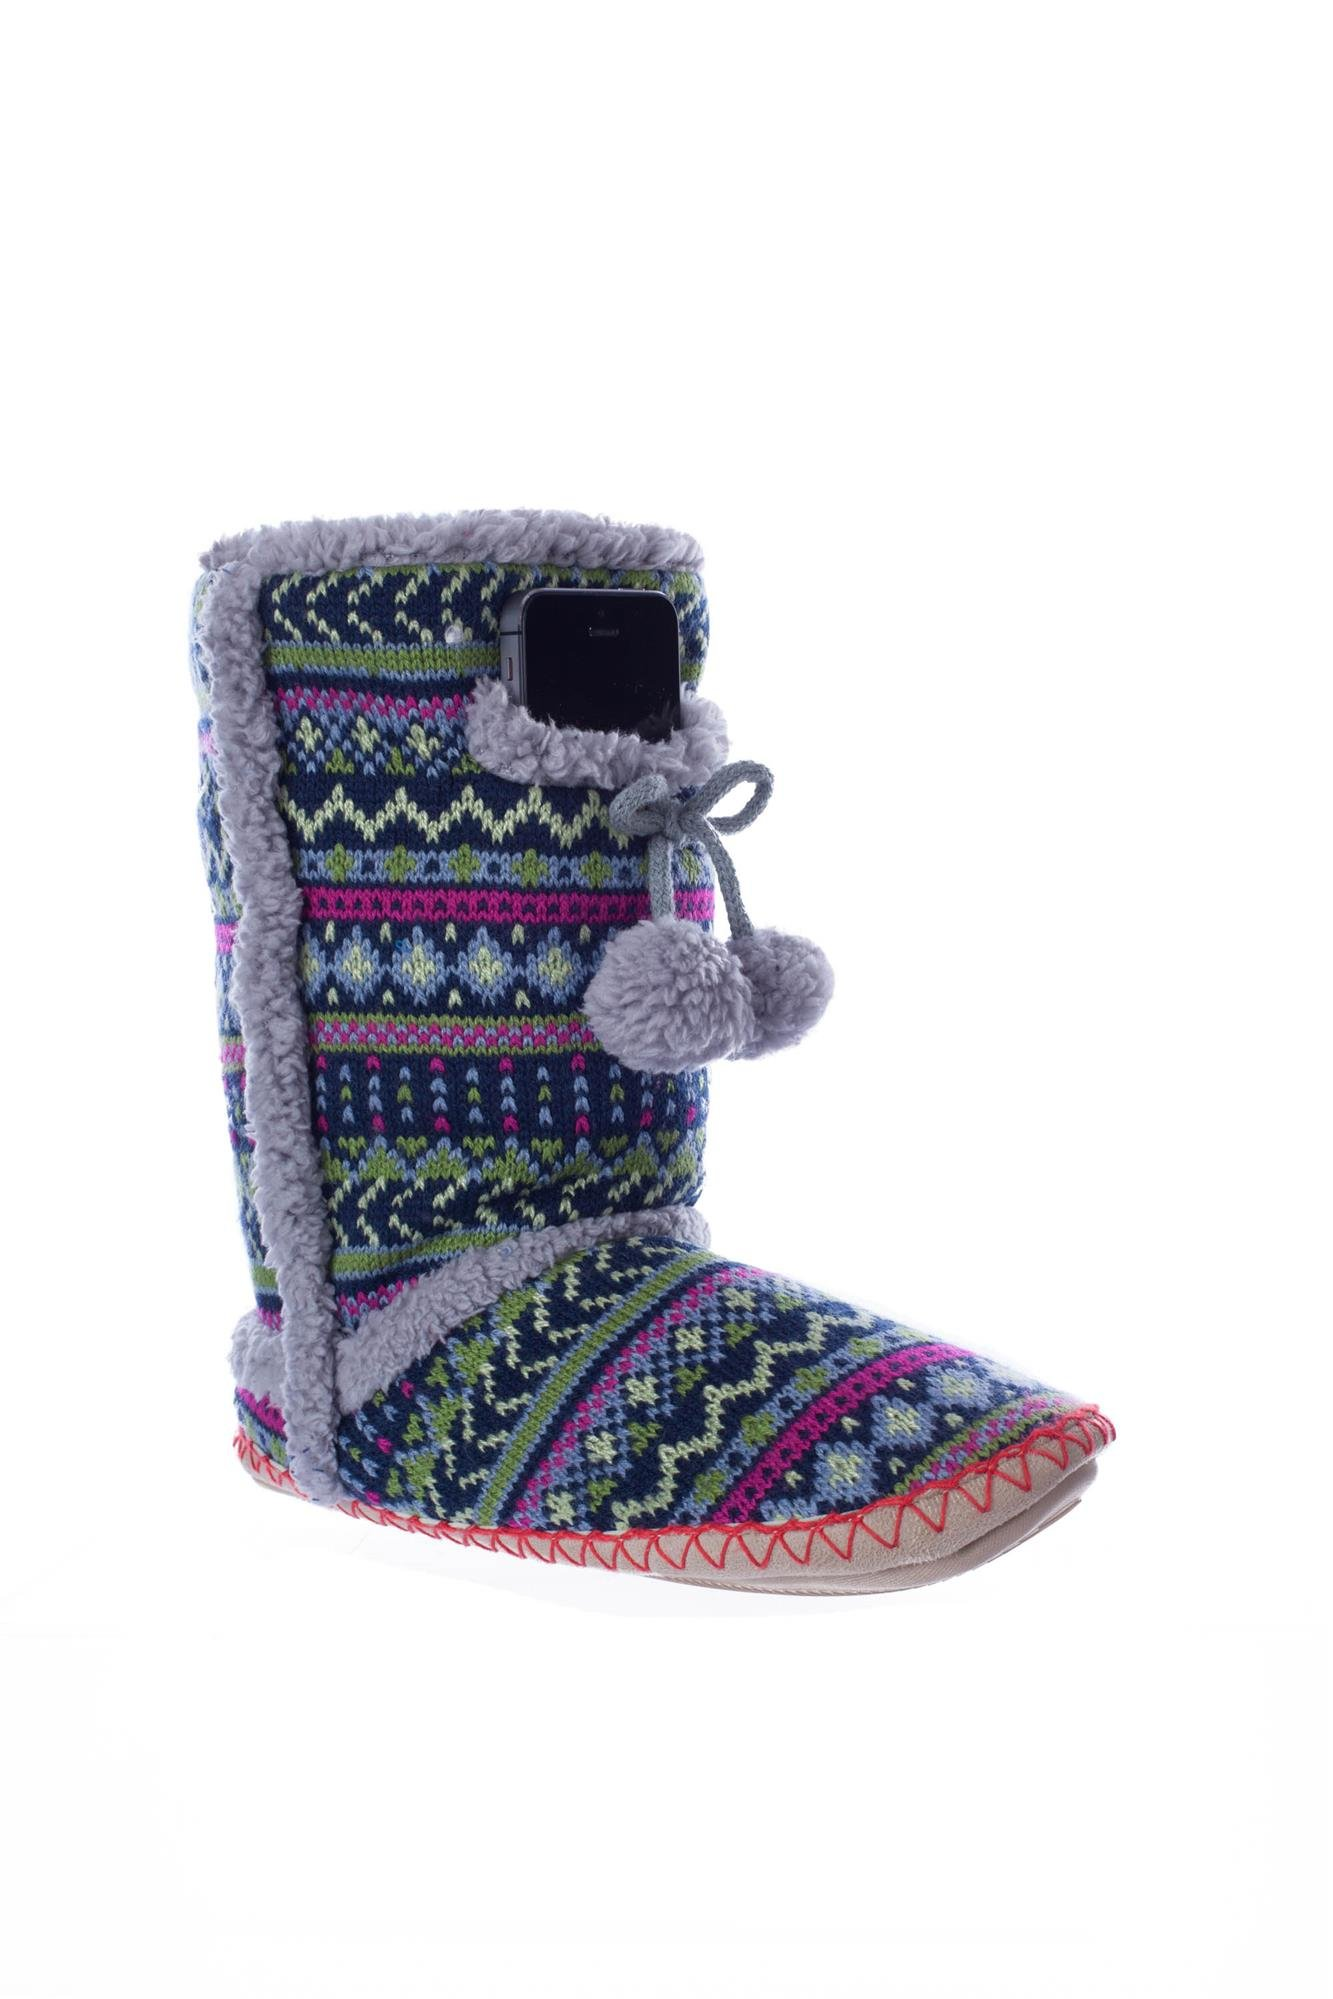 Navajo Lime Print Indoor/Outdoor Size Medium Fuzzy Boot with Phone Pocket